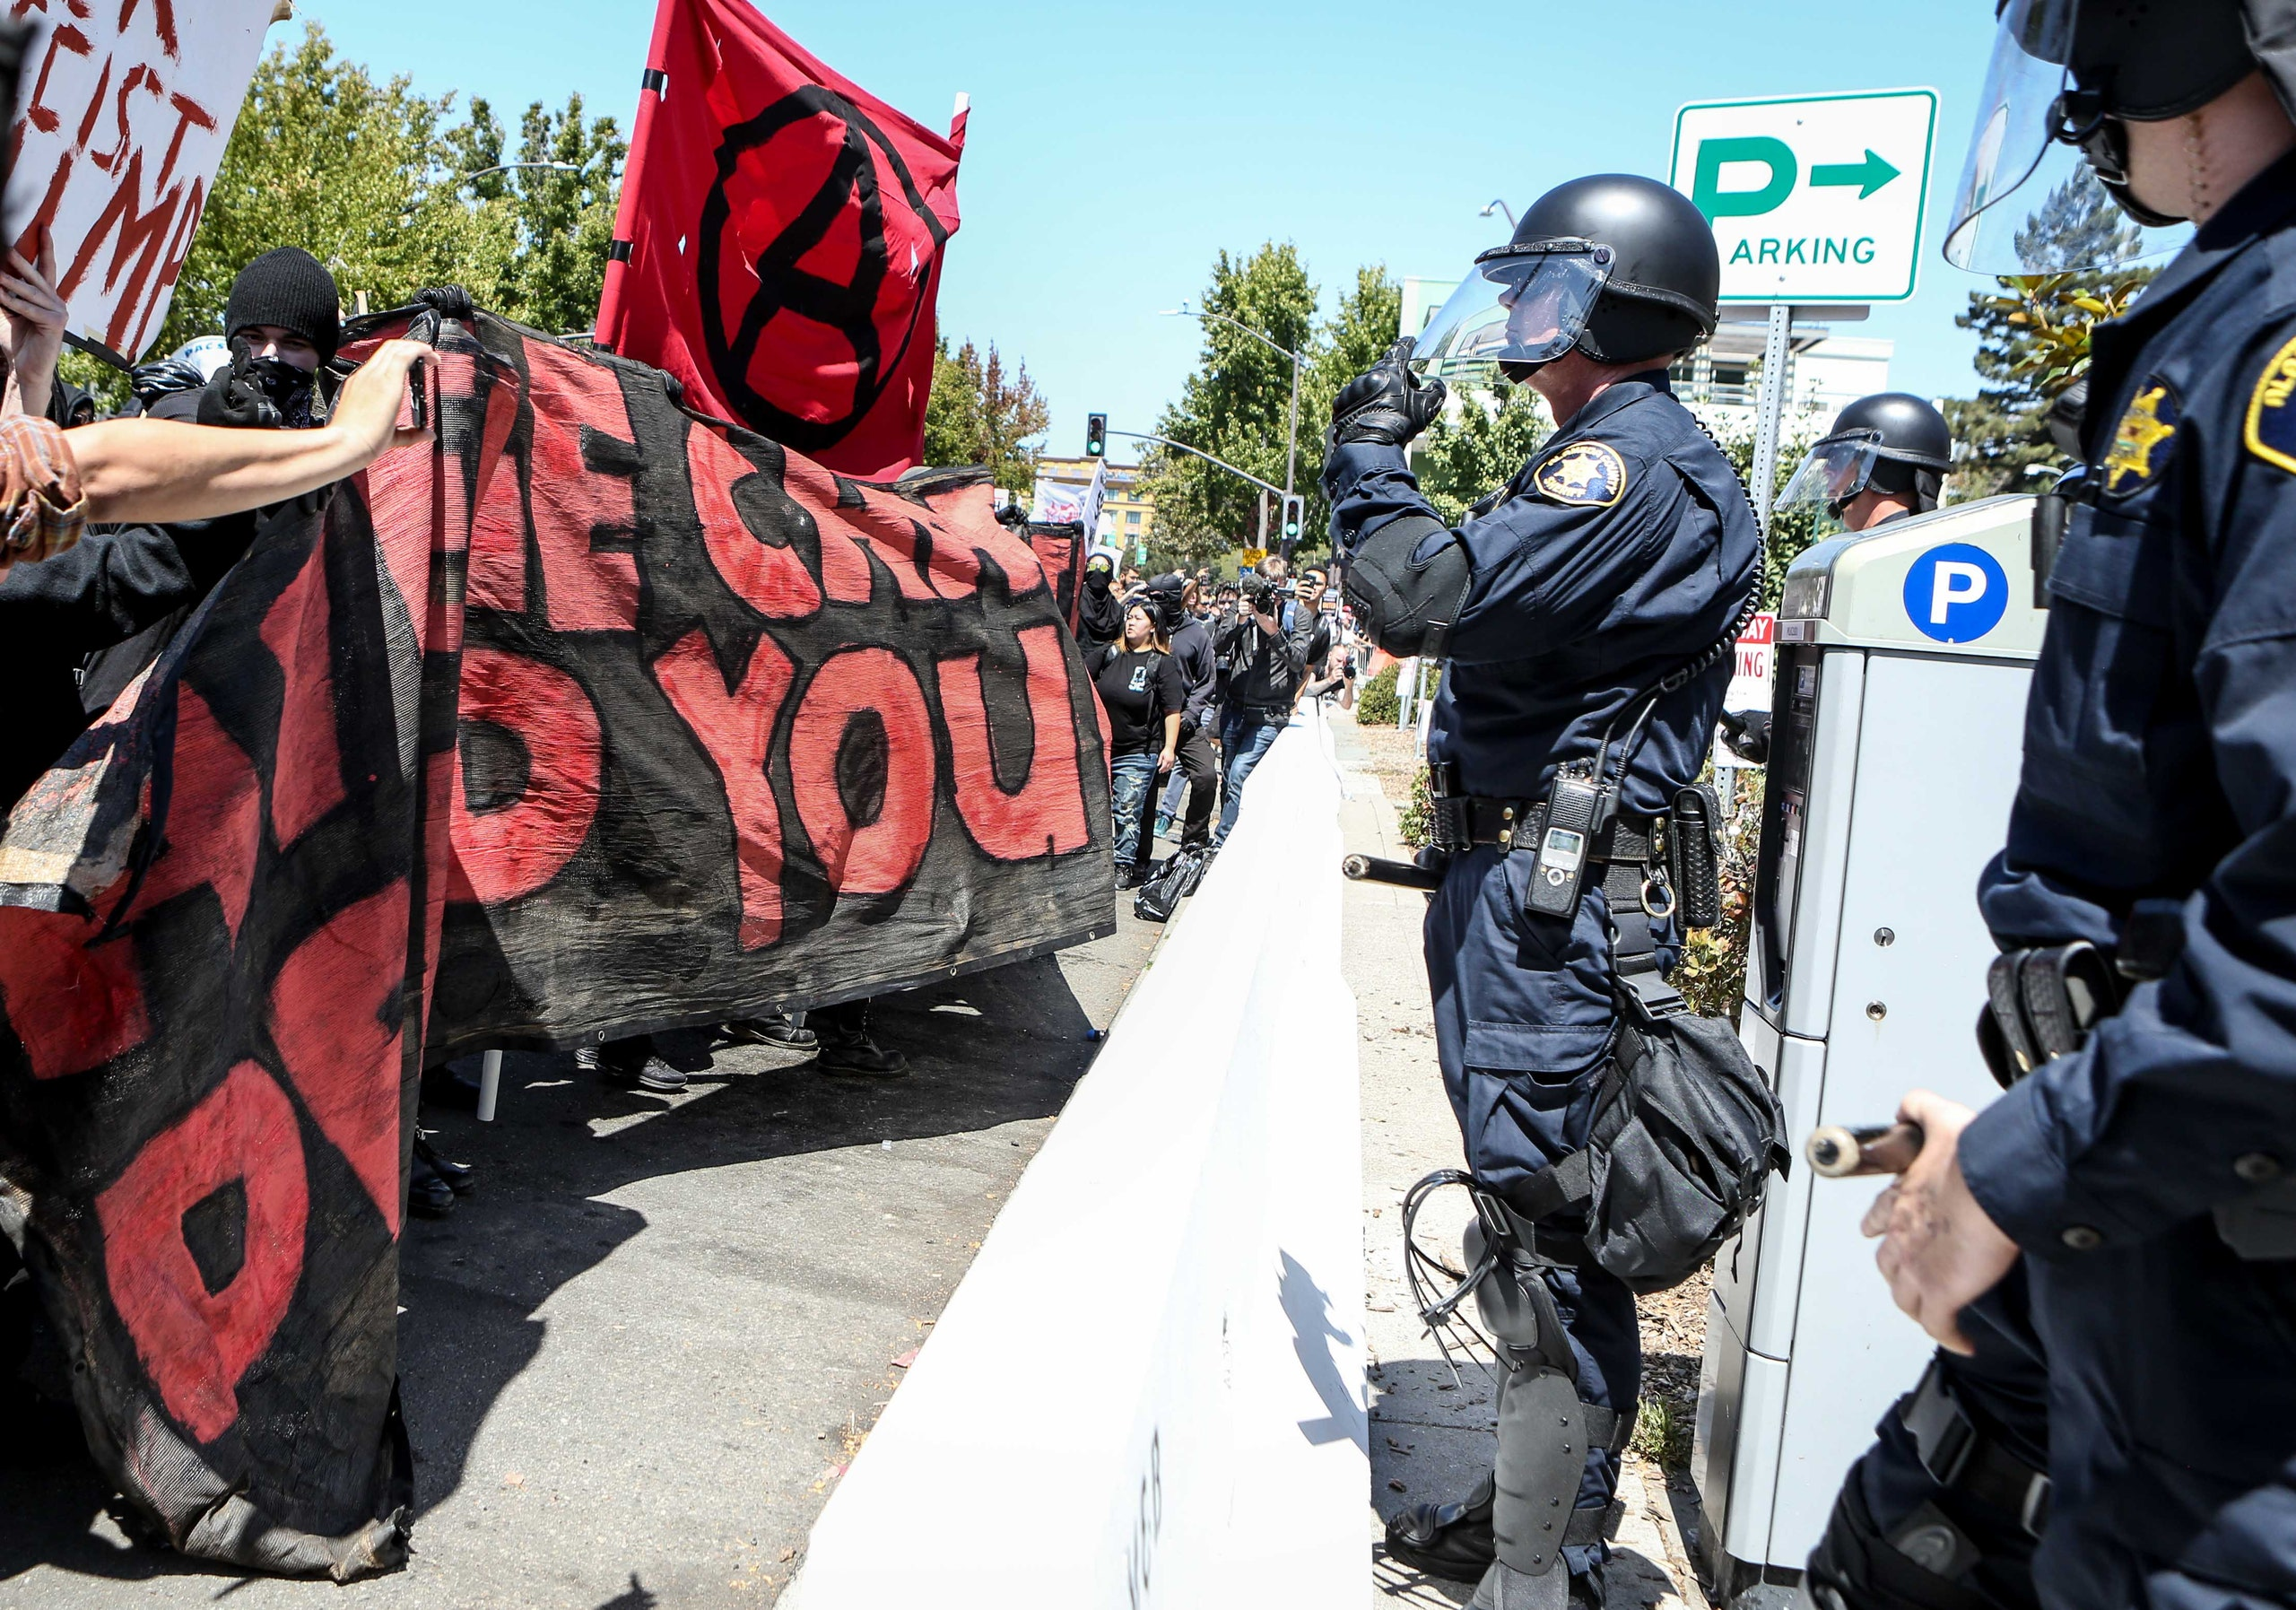 Trump targets 'antifa' in protest response, wants 'terrorist' label—here's what that would mean